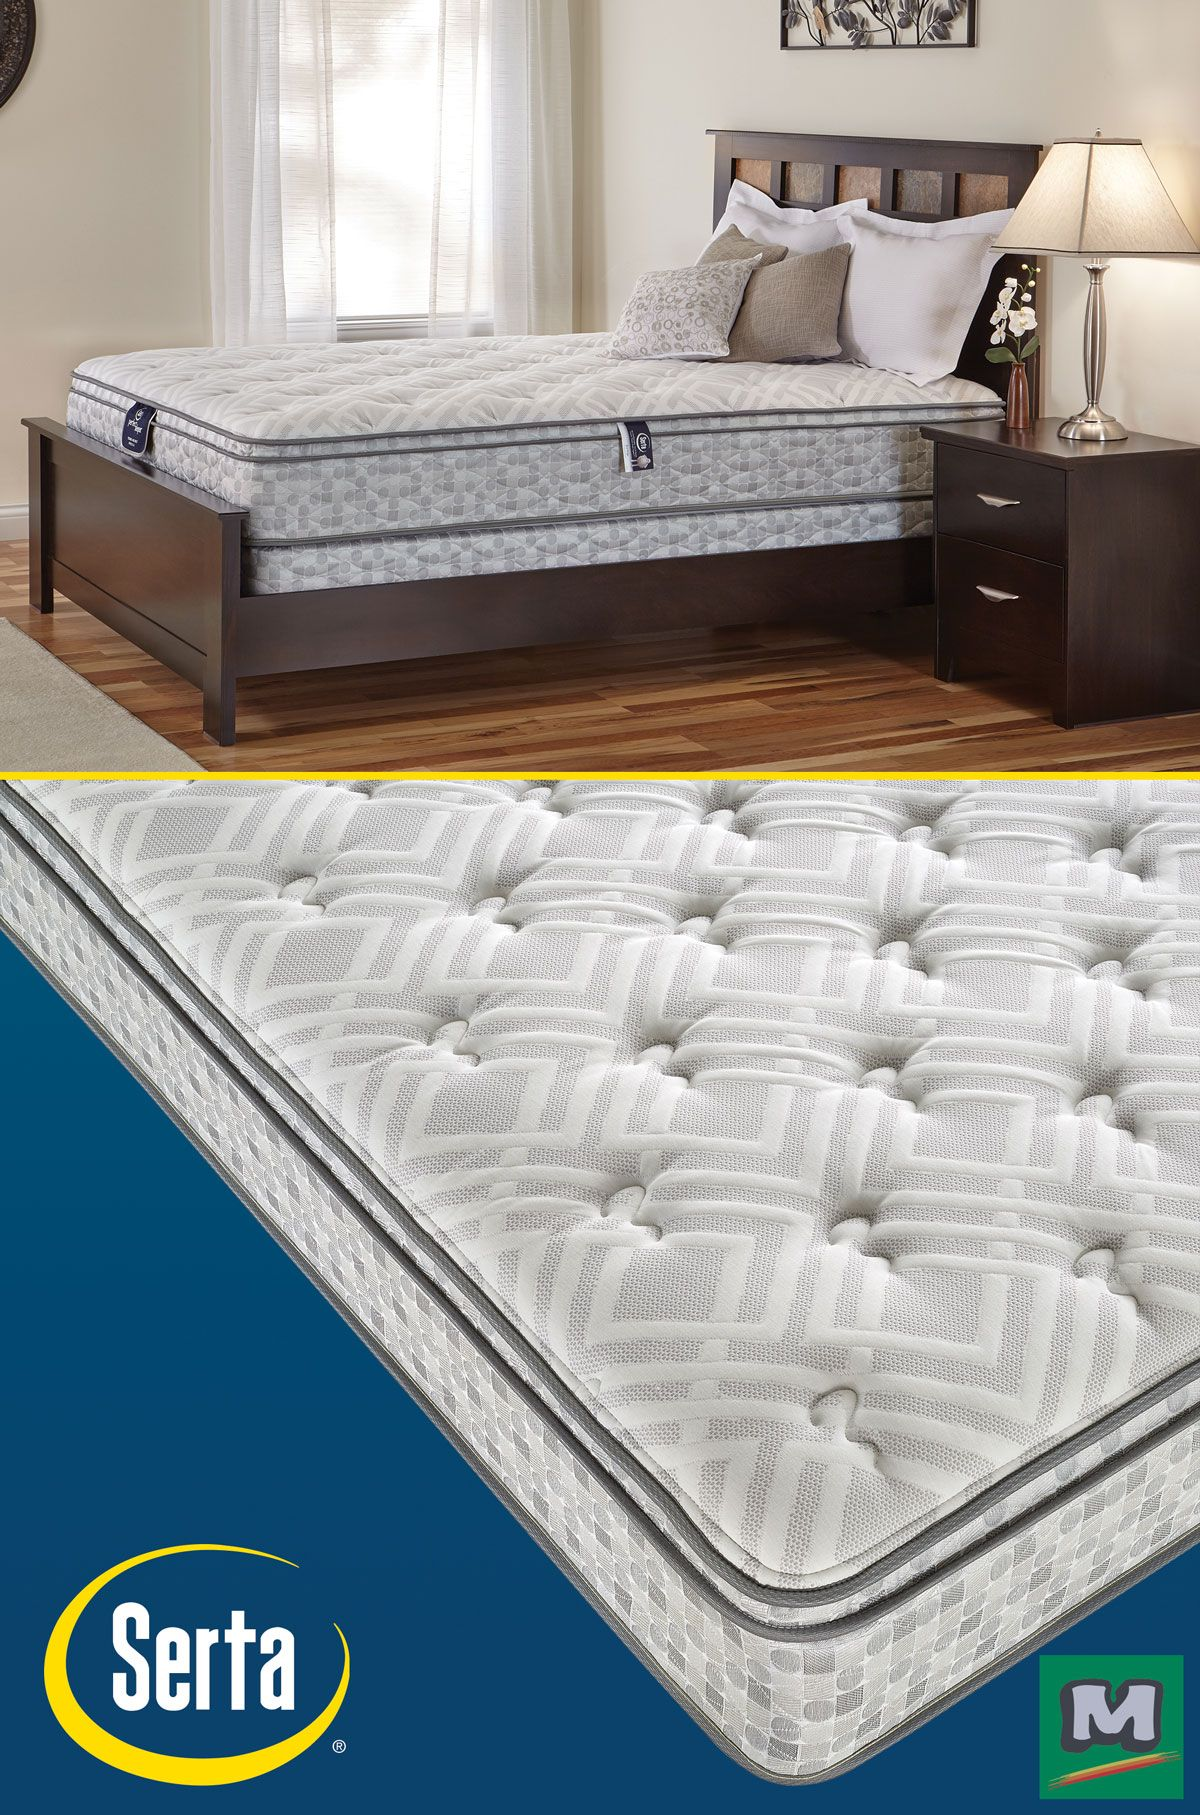 This Blue Ridge Ii Perfect Sleeper Mattress From Serta Features A Custom Support